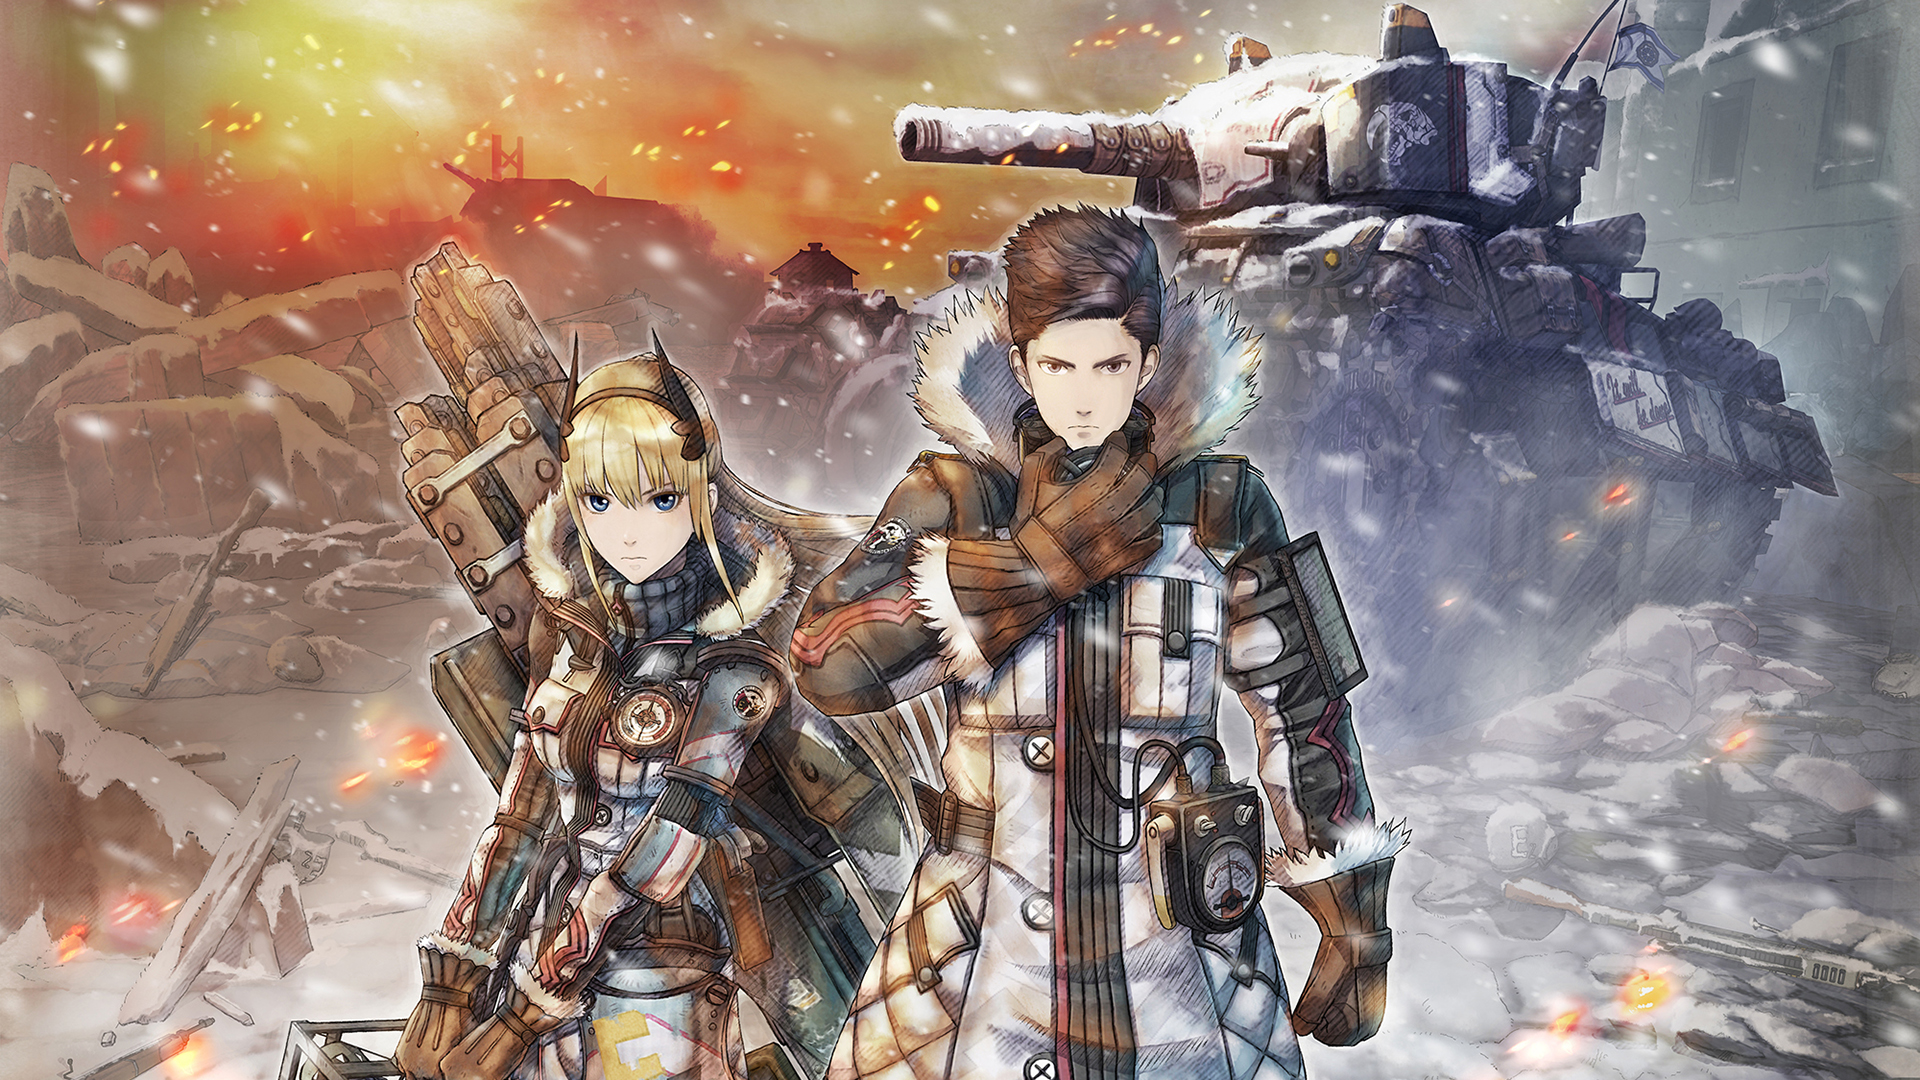 Valkyria Chronicles 4 10th Anniversary Memorial Pack DX Pack Limited Edition